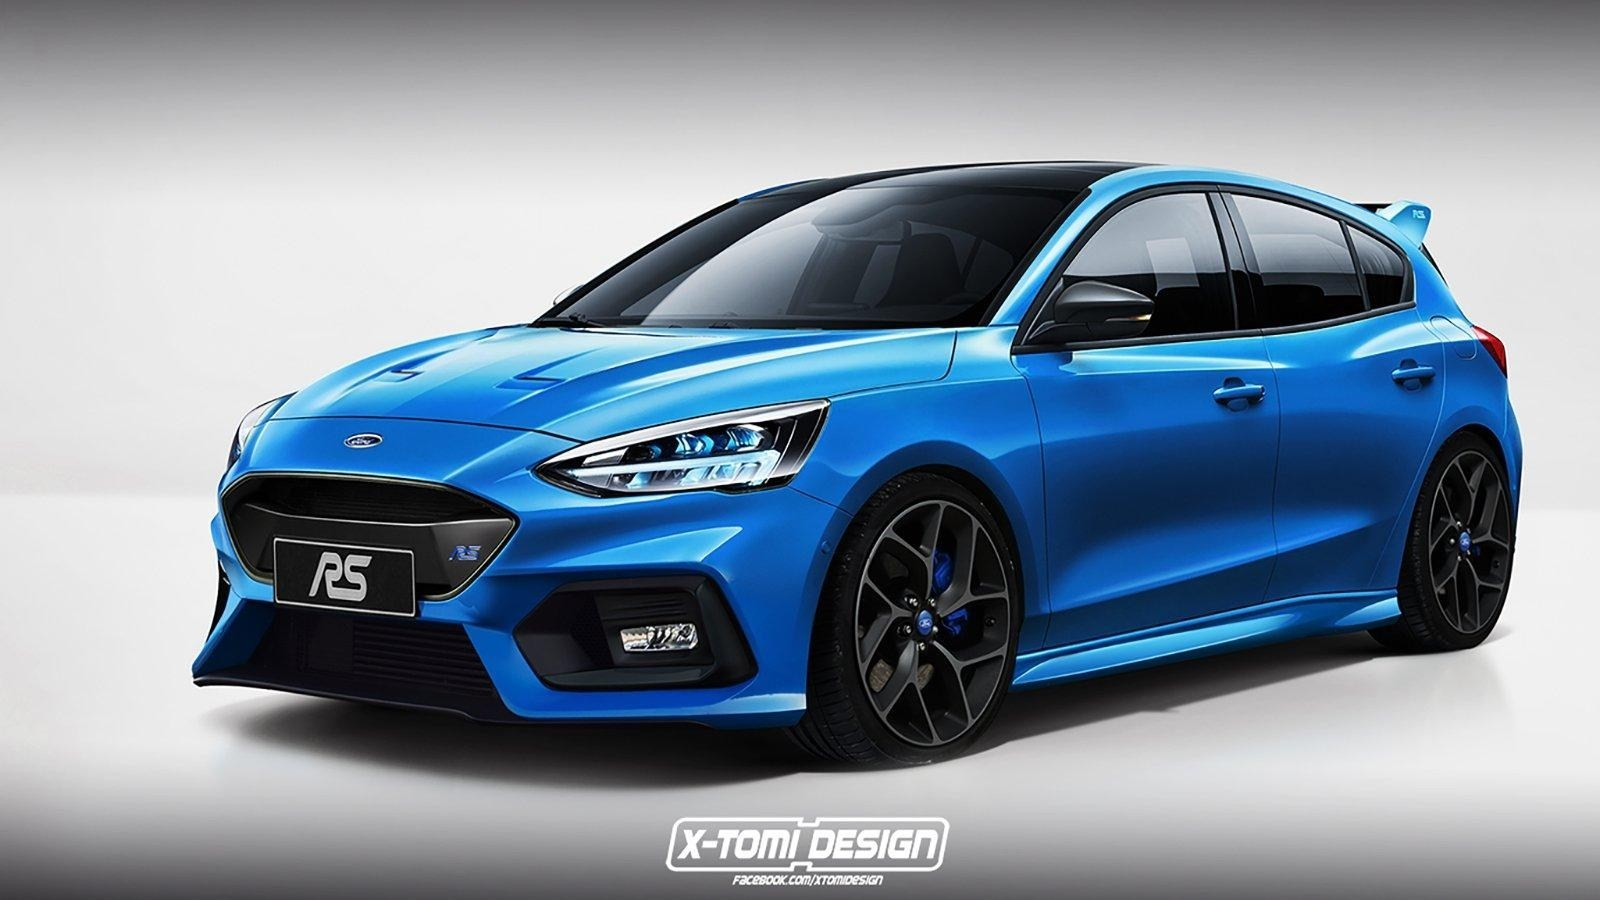 59 The Best 2019 Ford Fiesta St Rs New Concept